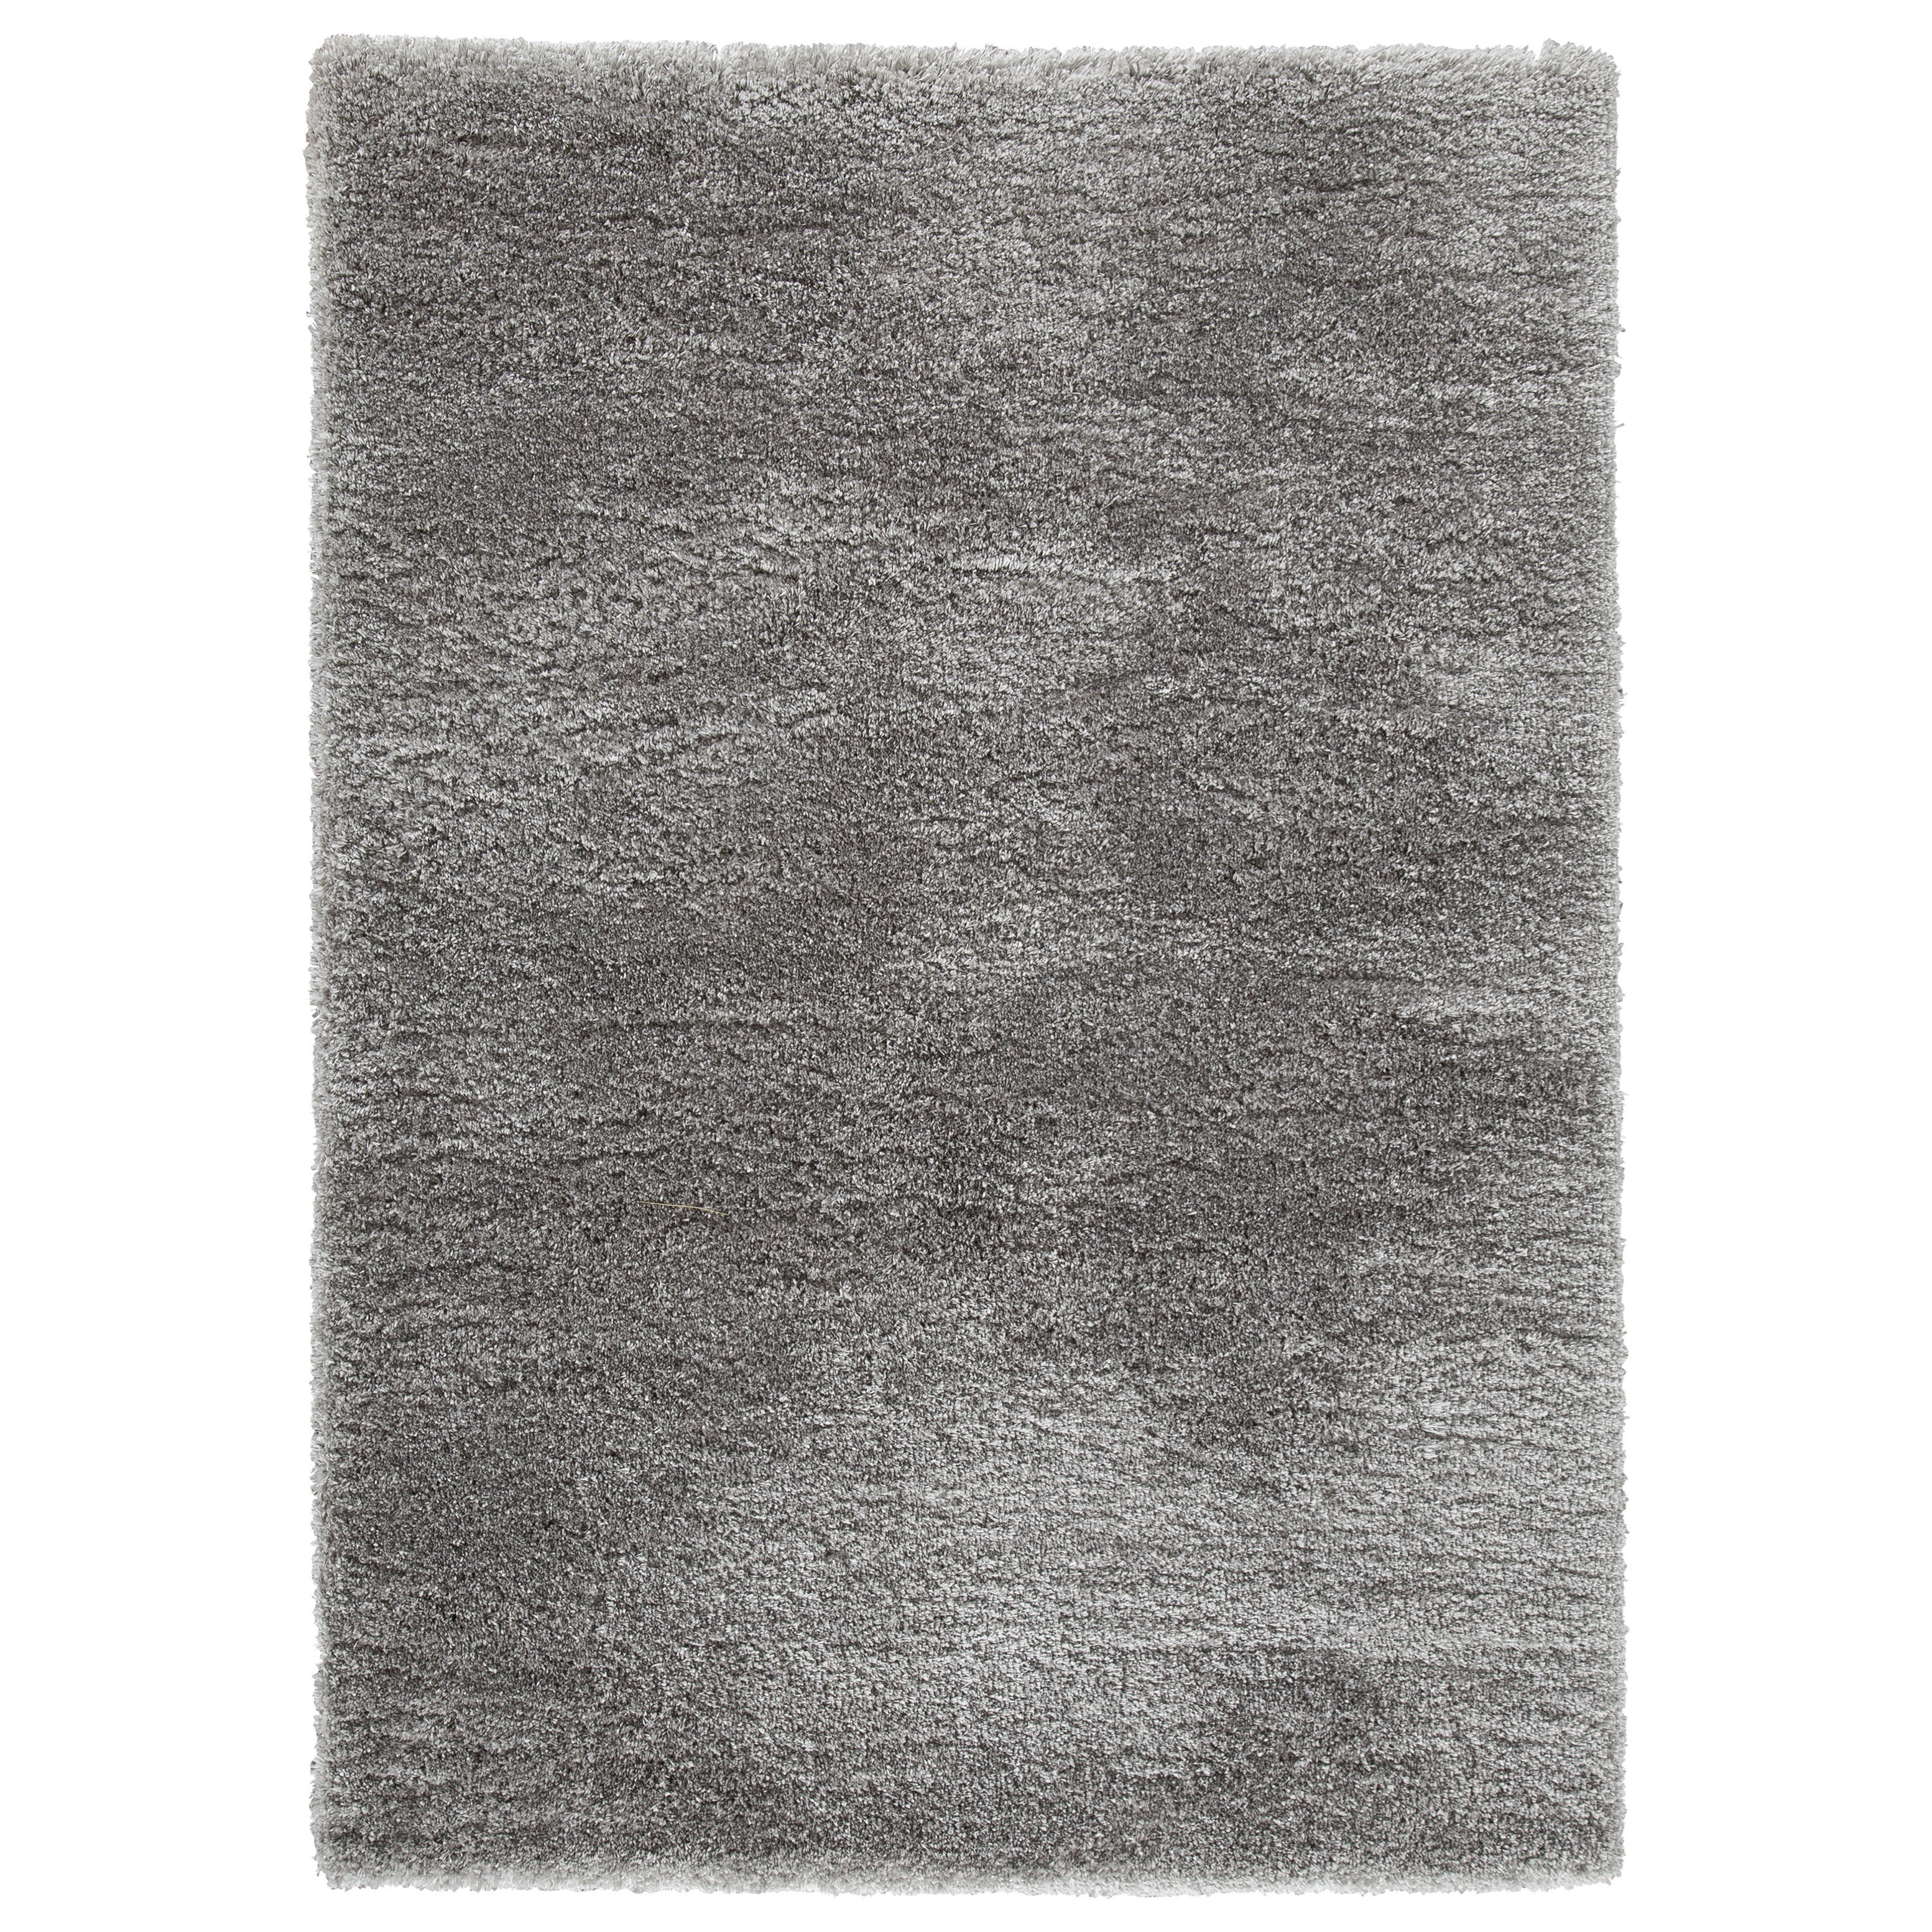 Casual Area Rugs Rendale Light Gray Medium Rug by Signature at Walker's Furniture